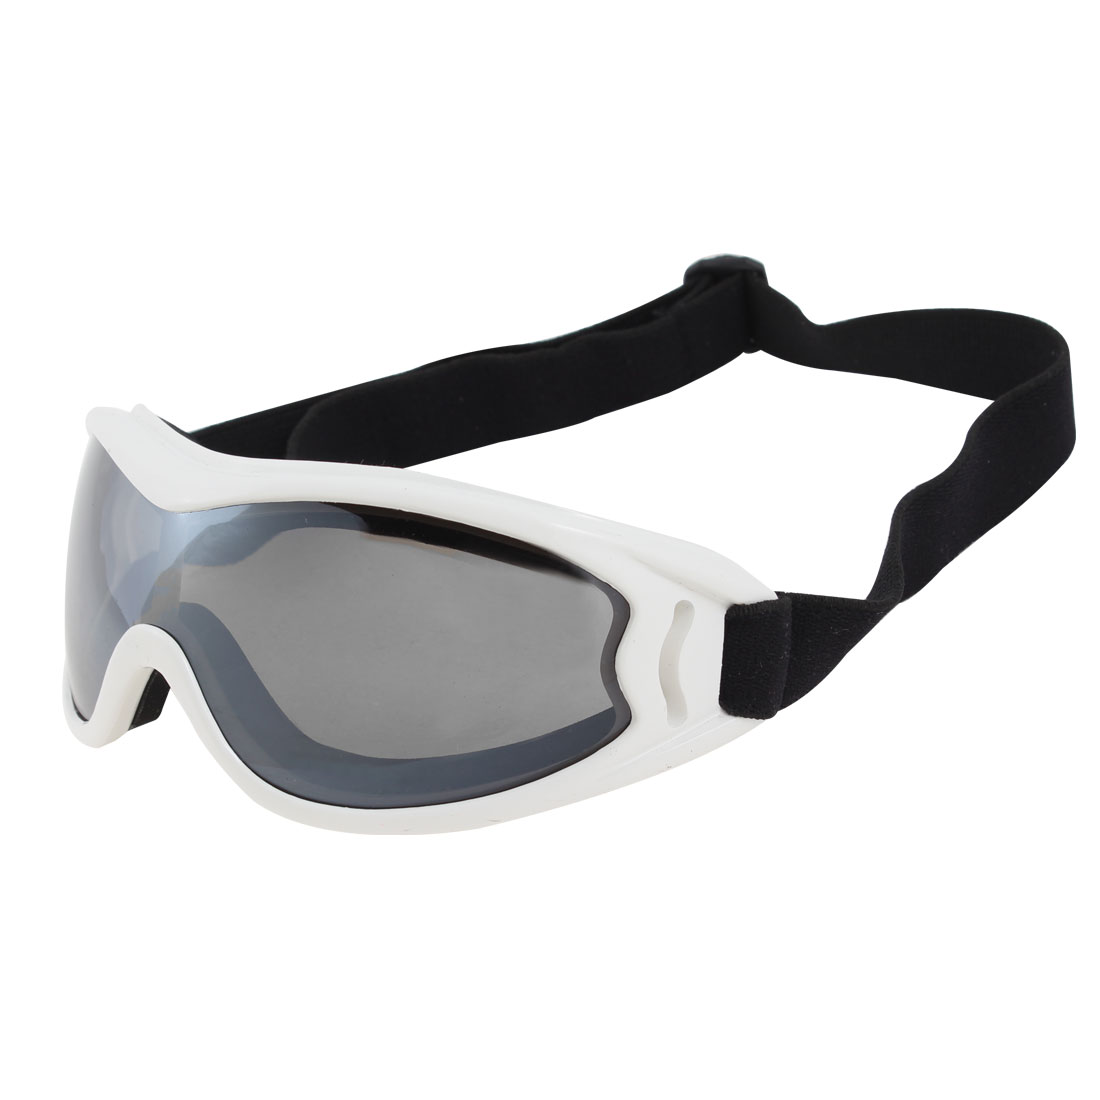 Adults Full Rim Clear Black Lens Motorcycle Ski Snowboard Sports Goggles